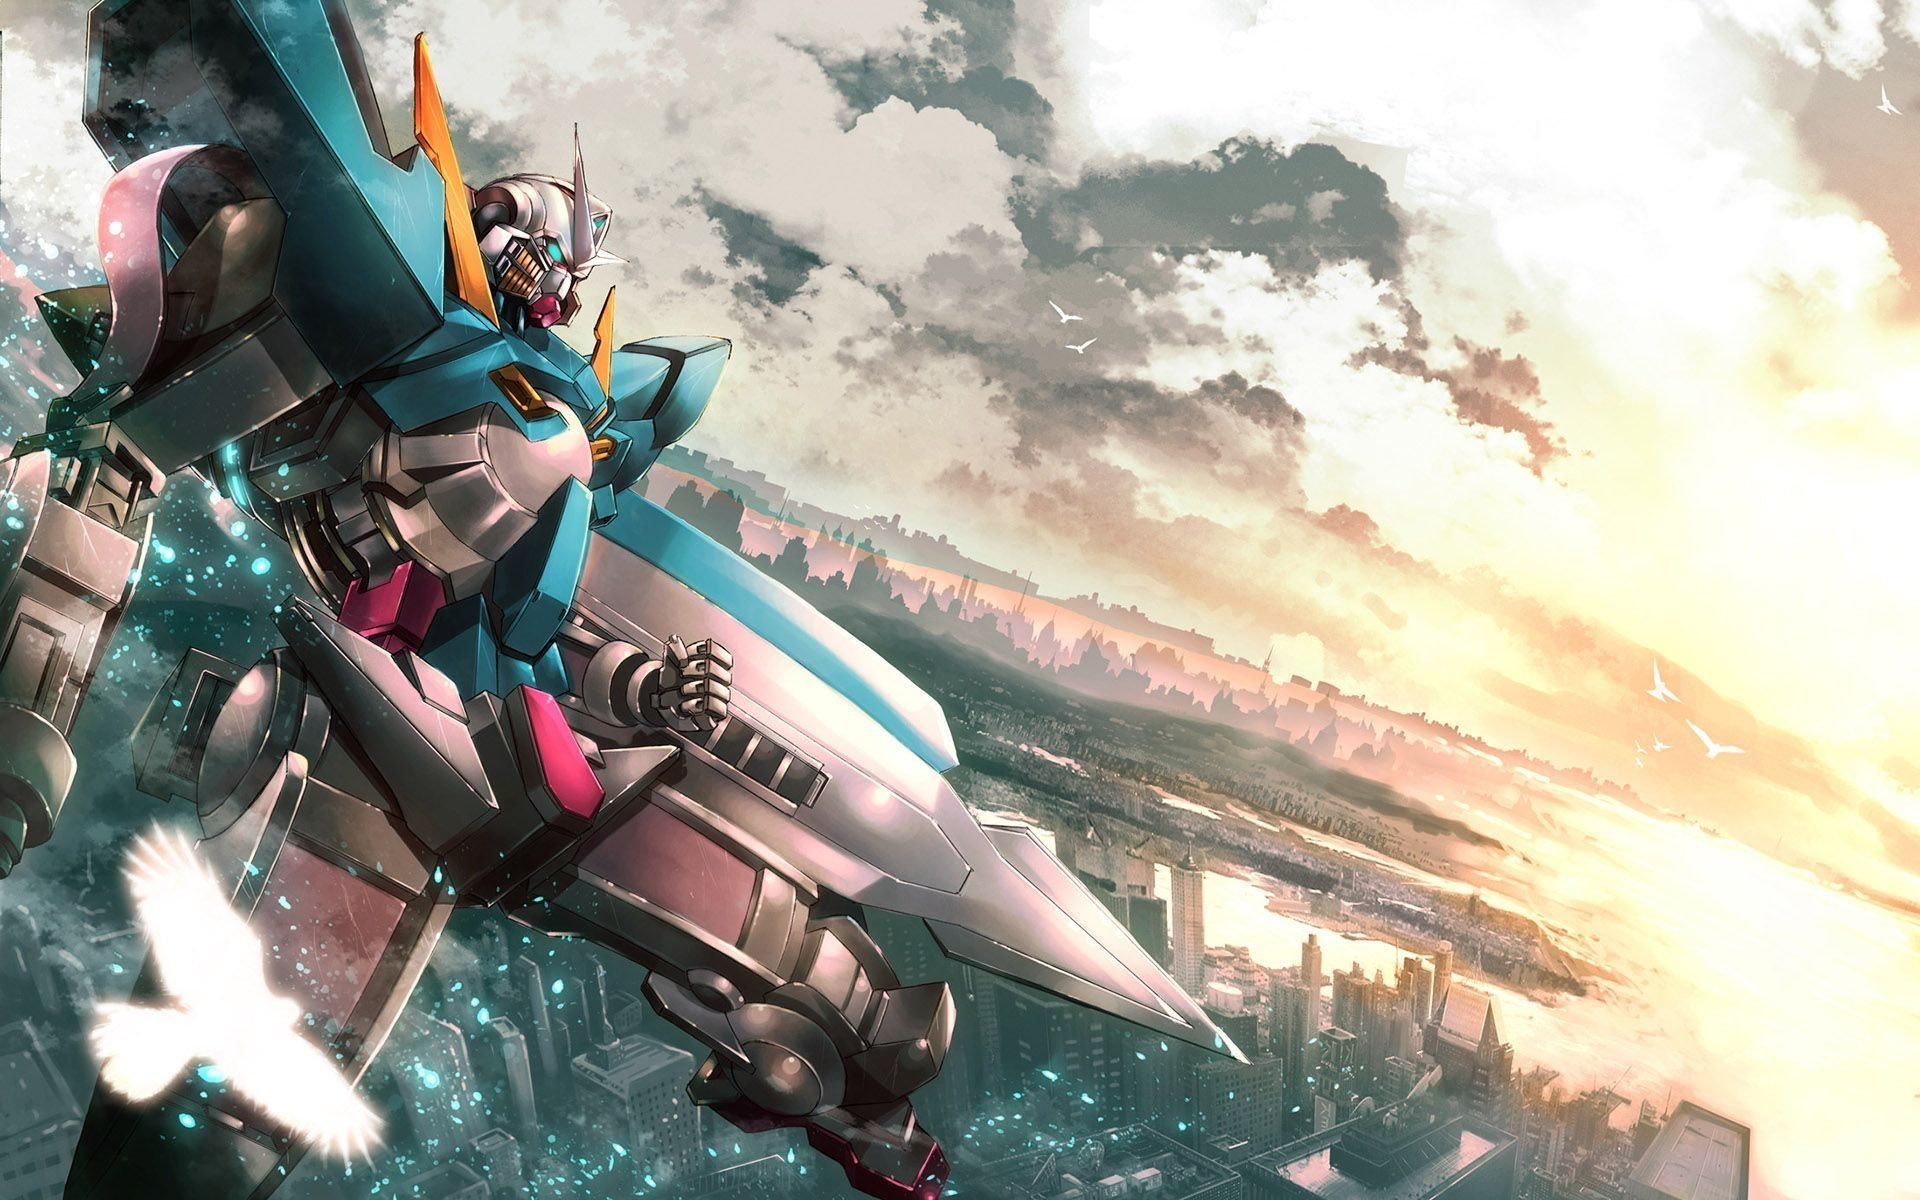 1920x1200 Download Gundam Exia wallpapers to your cell phone exia gundam | Wallpapers  4k | Pinterest | Gundam, Wallpaper and Hd wallpaper